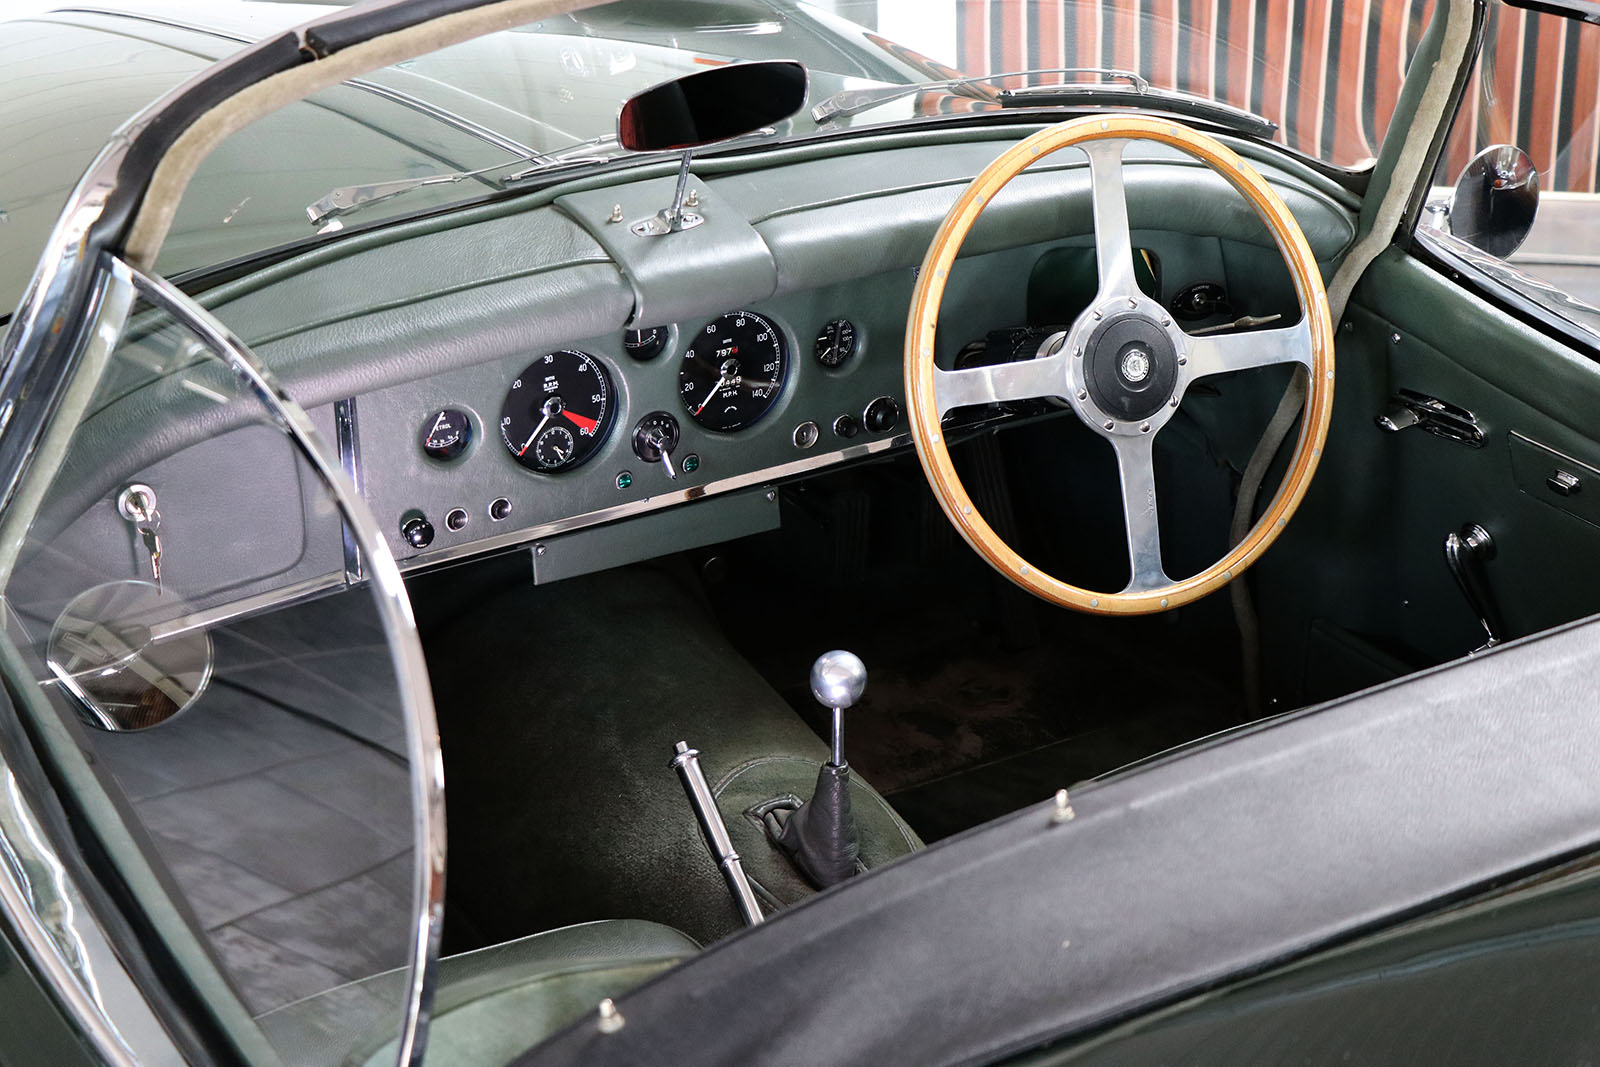 1959_green_XK150_3.8_DHC_sayer selection_wilkinson_10 web.jpg